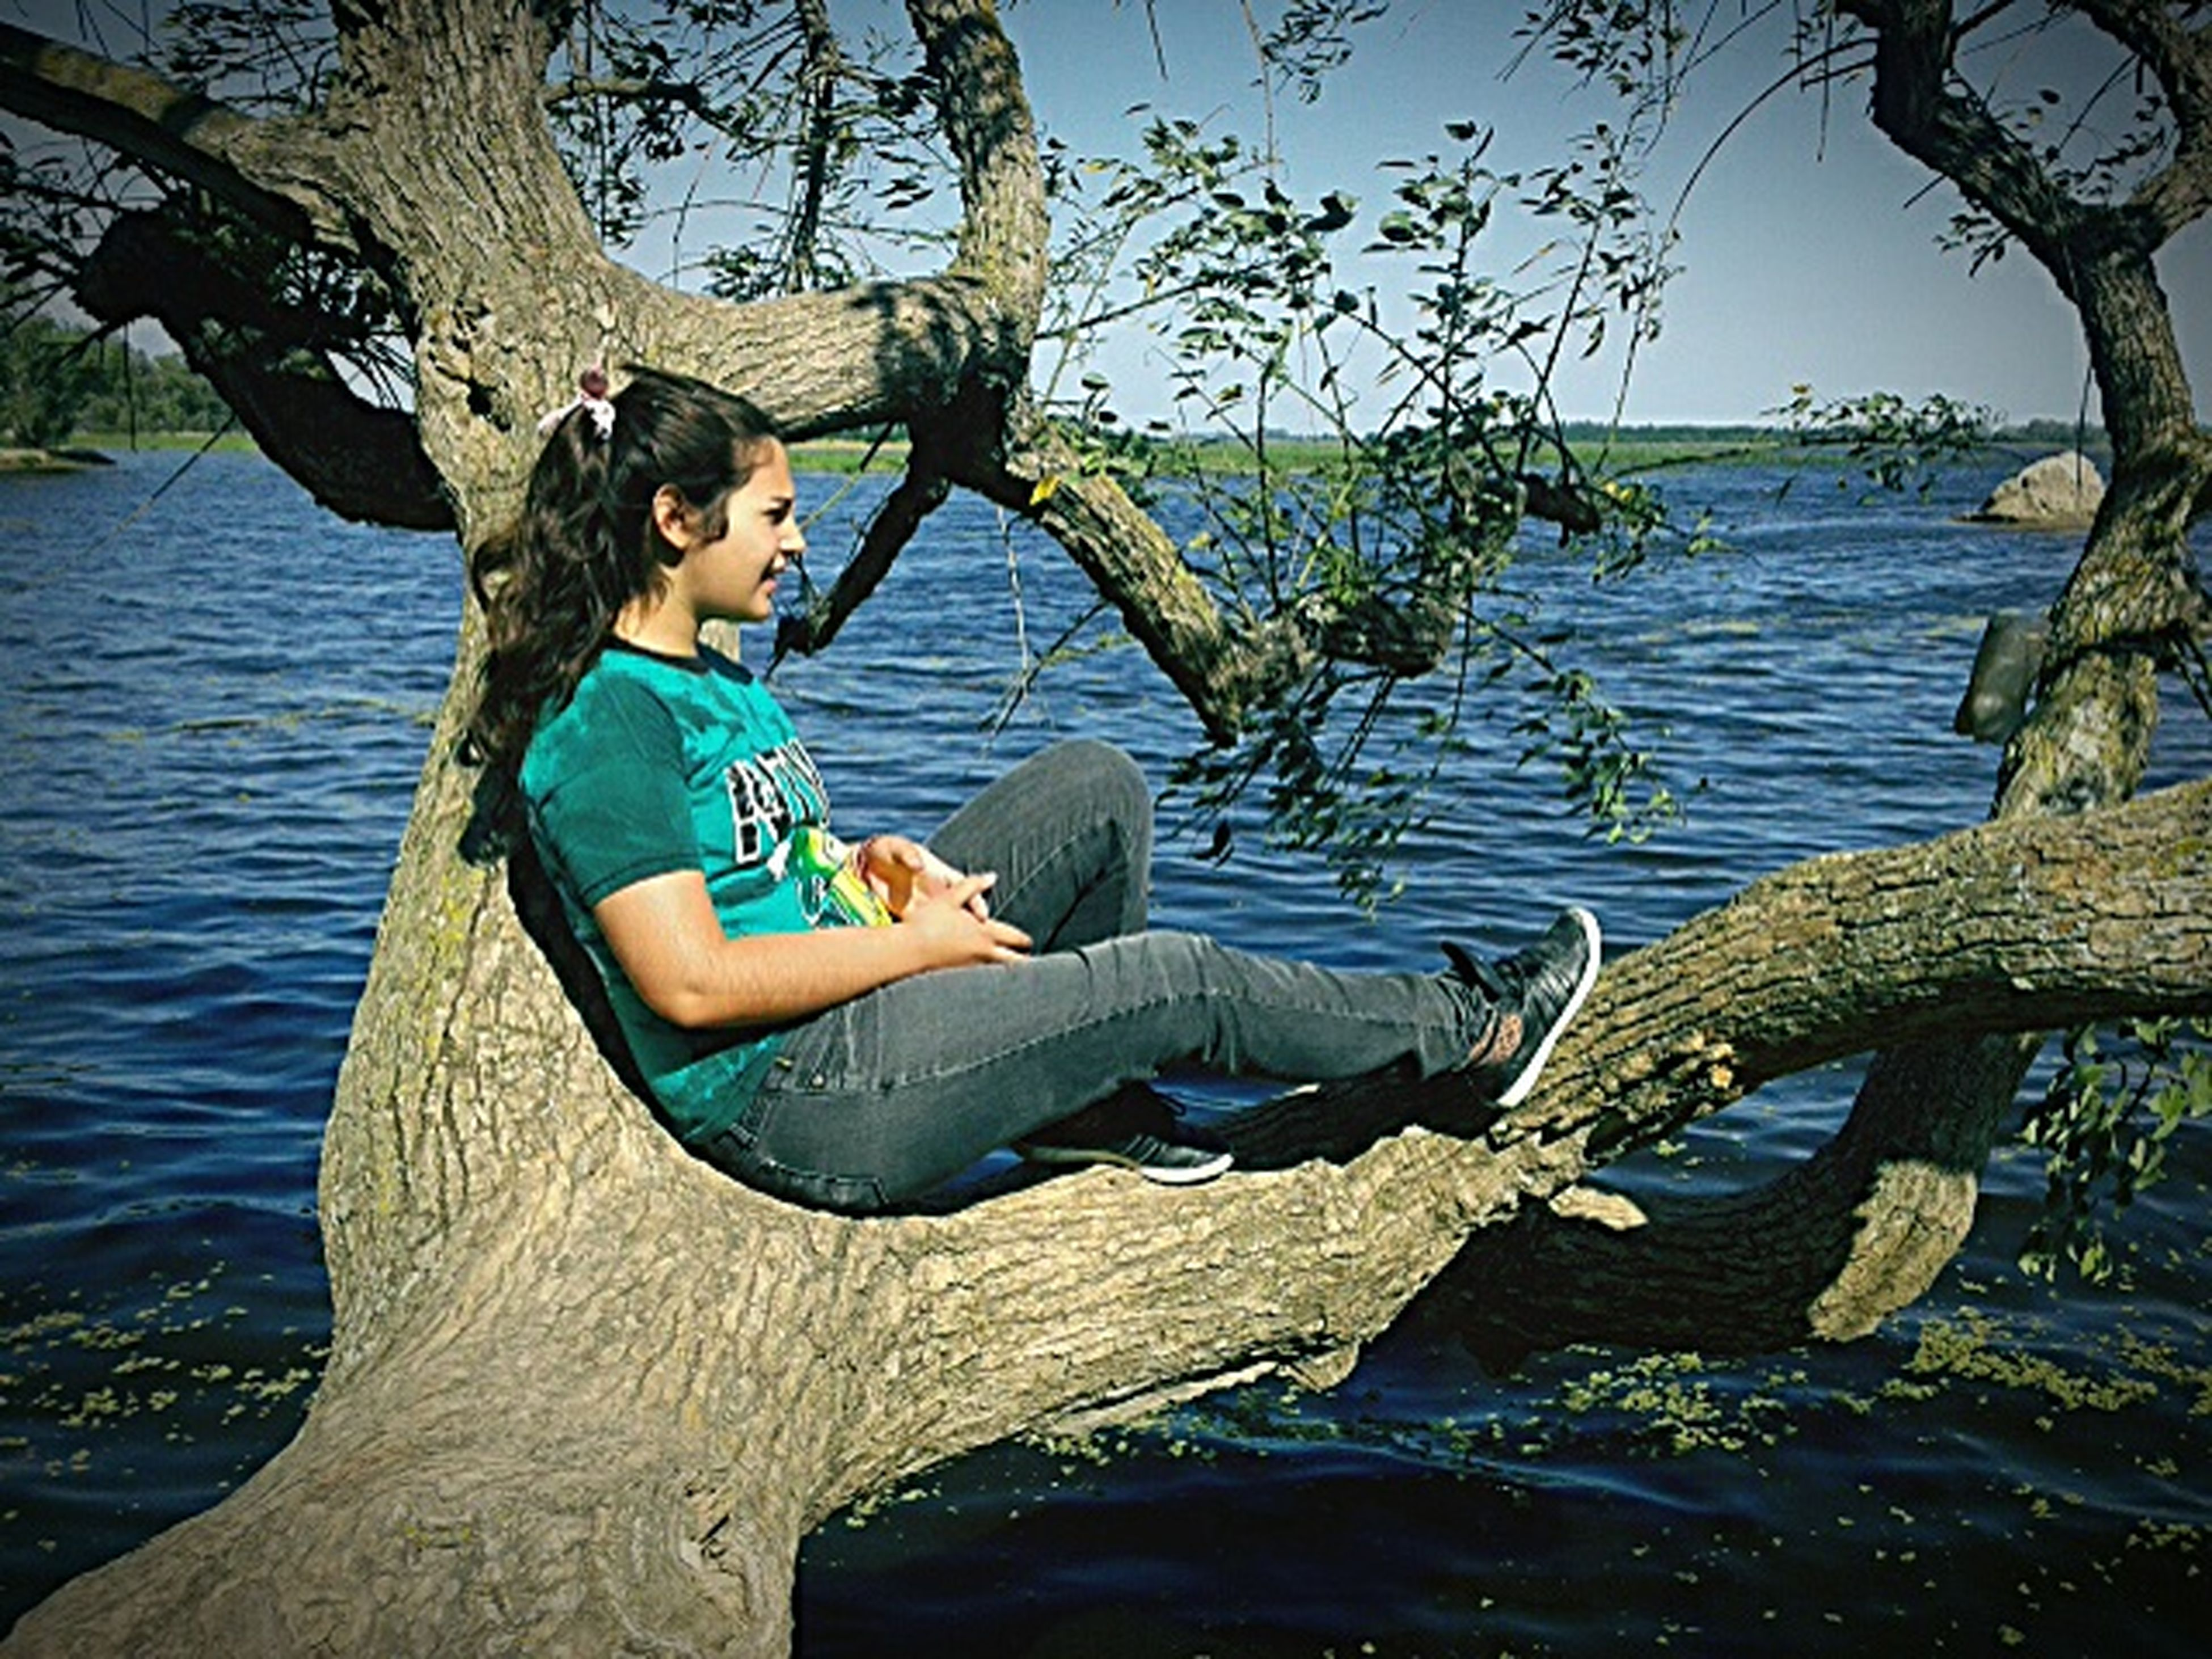 water, lifestyles, leisure activity, young adult, full length, casual clothing, tree, sitting, lake, young women, standing, nautical vessel, nature, tranquility, person, relaxation, vacations, day